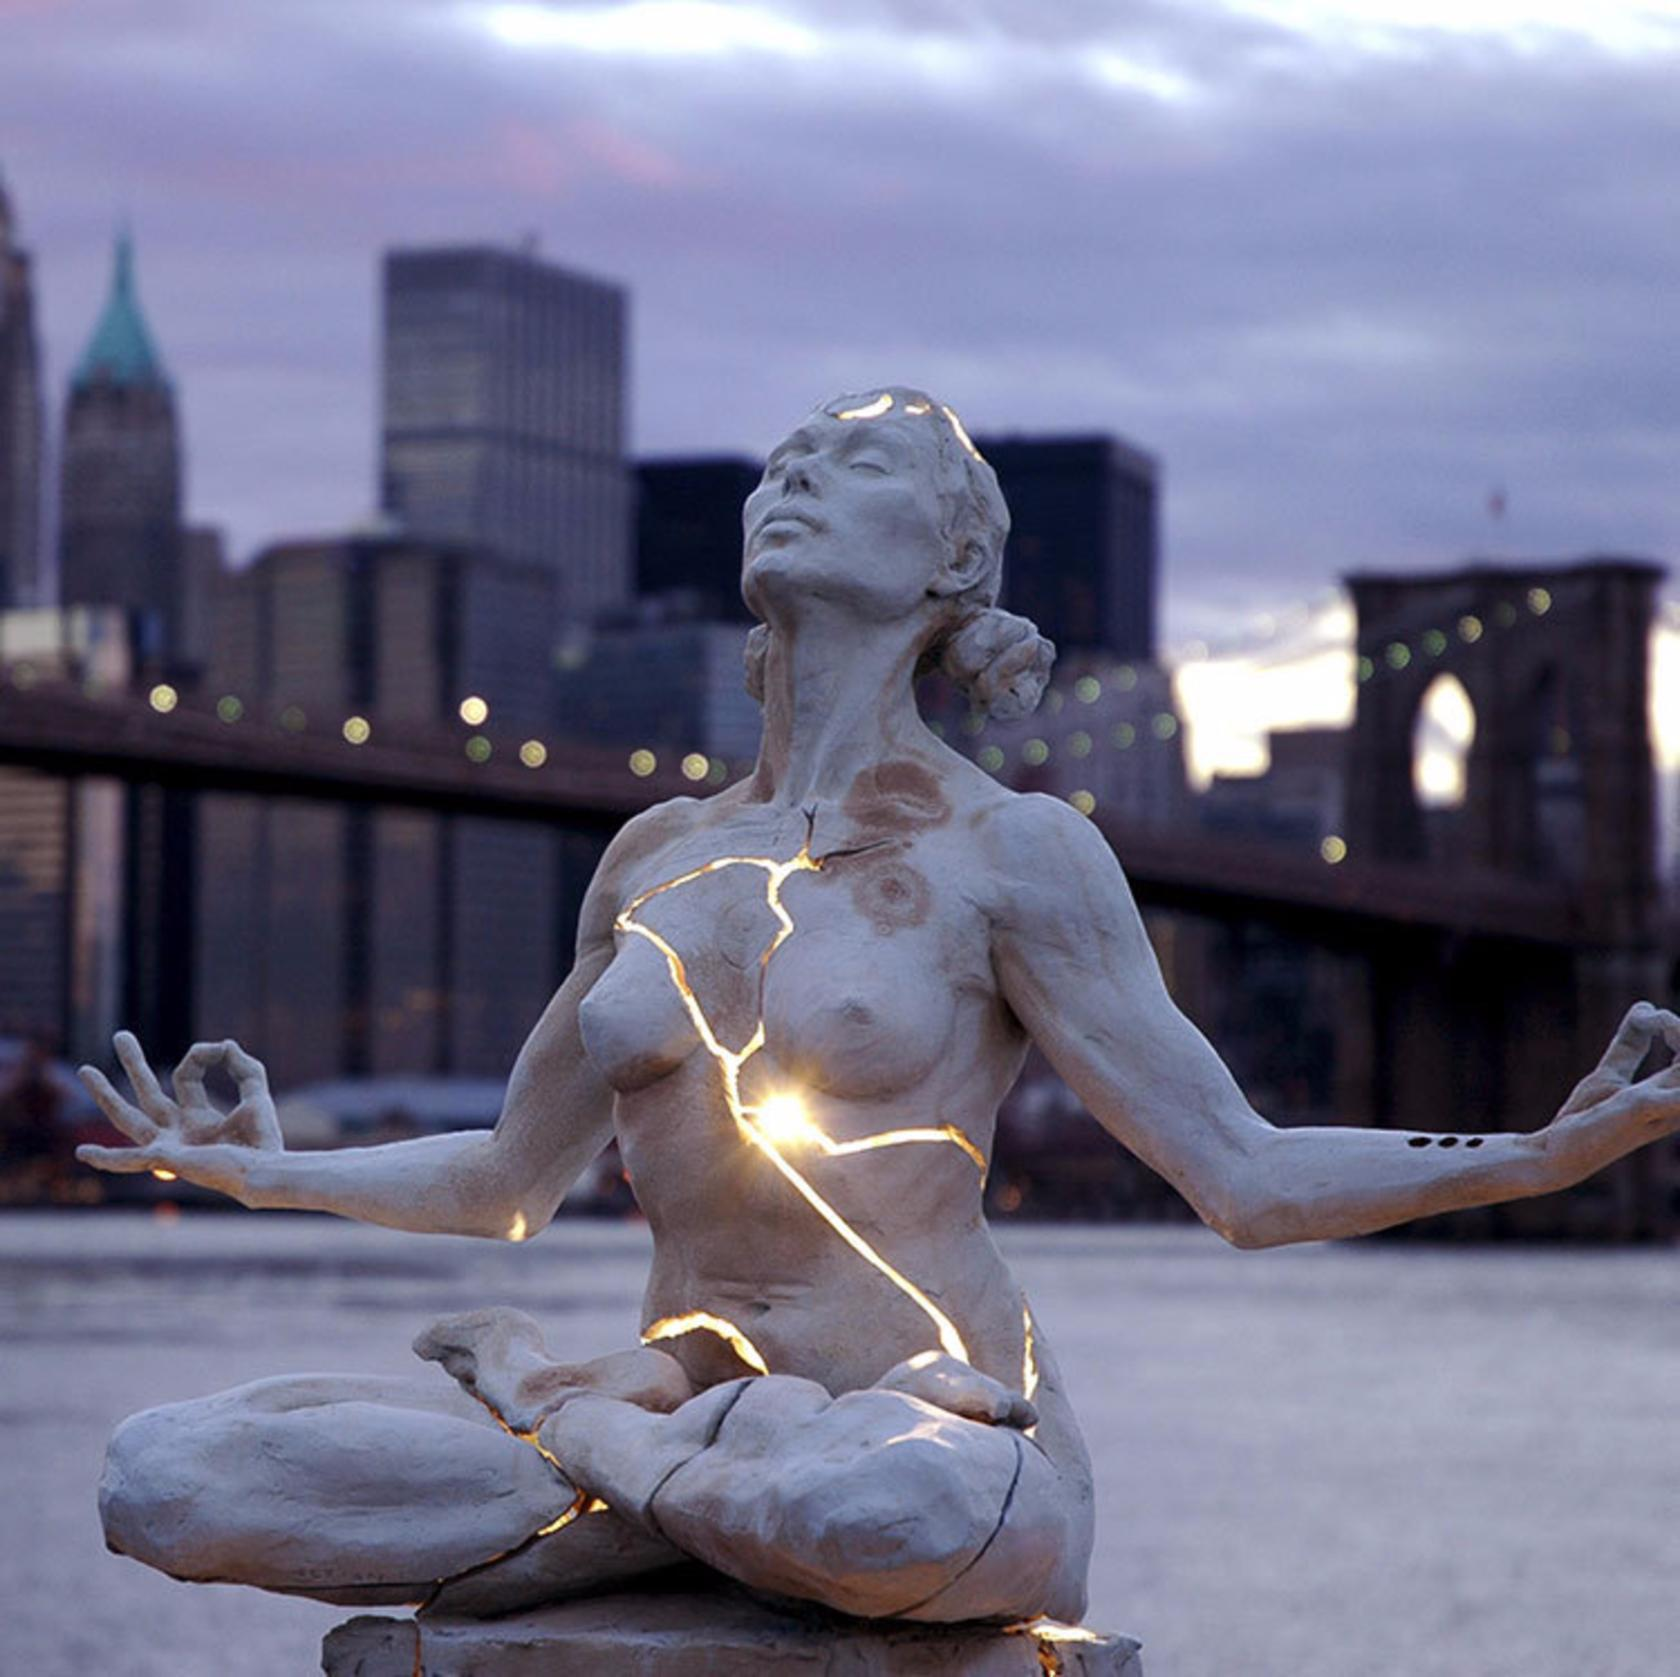 Beyond-beautiful-15-sculptures-that-look-too-real-to-be-true6